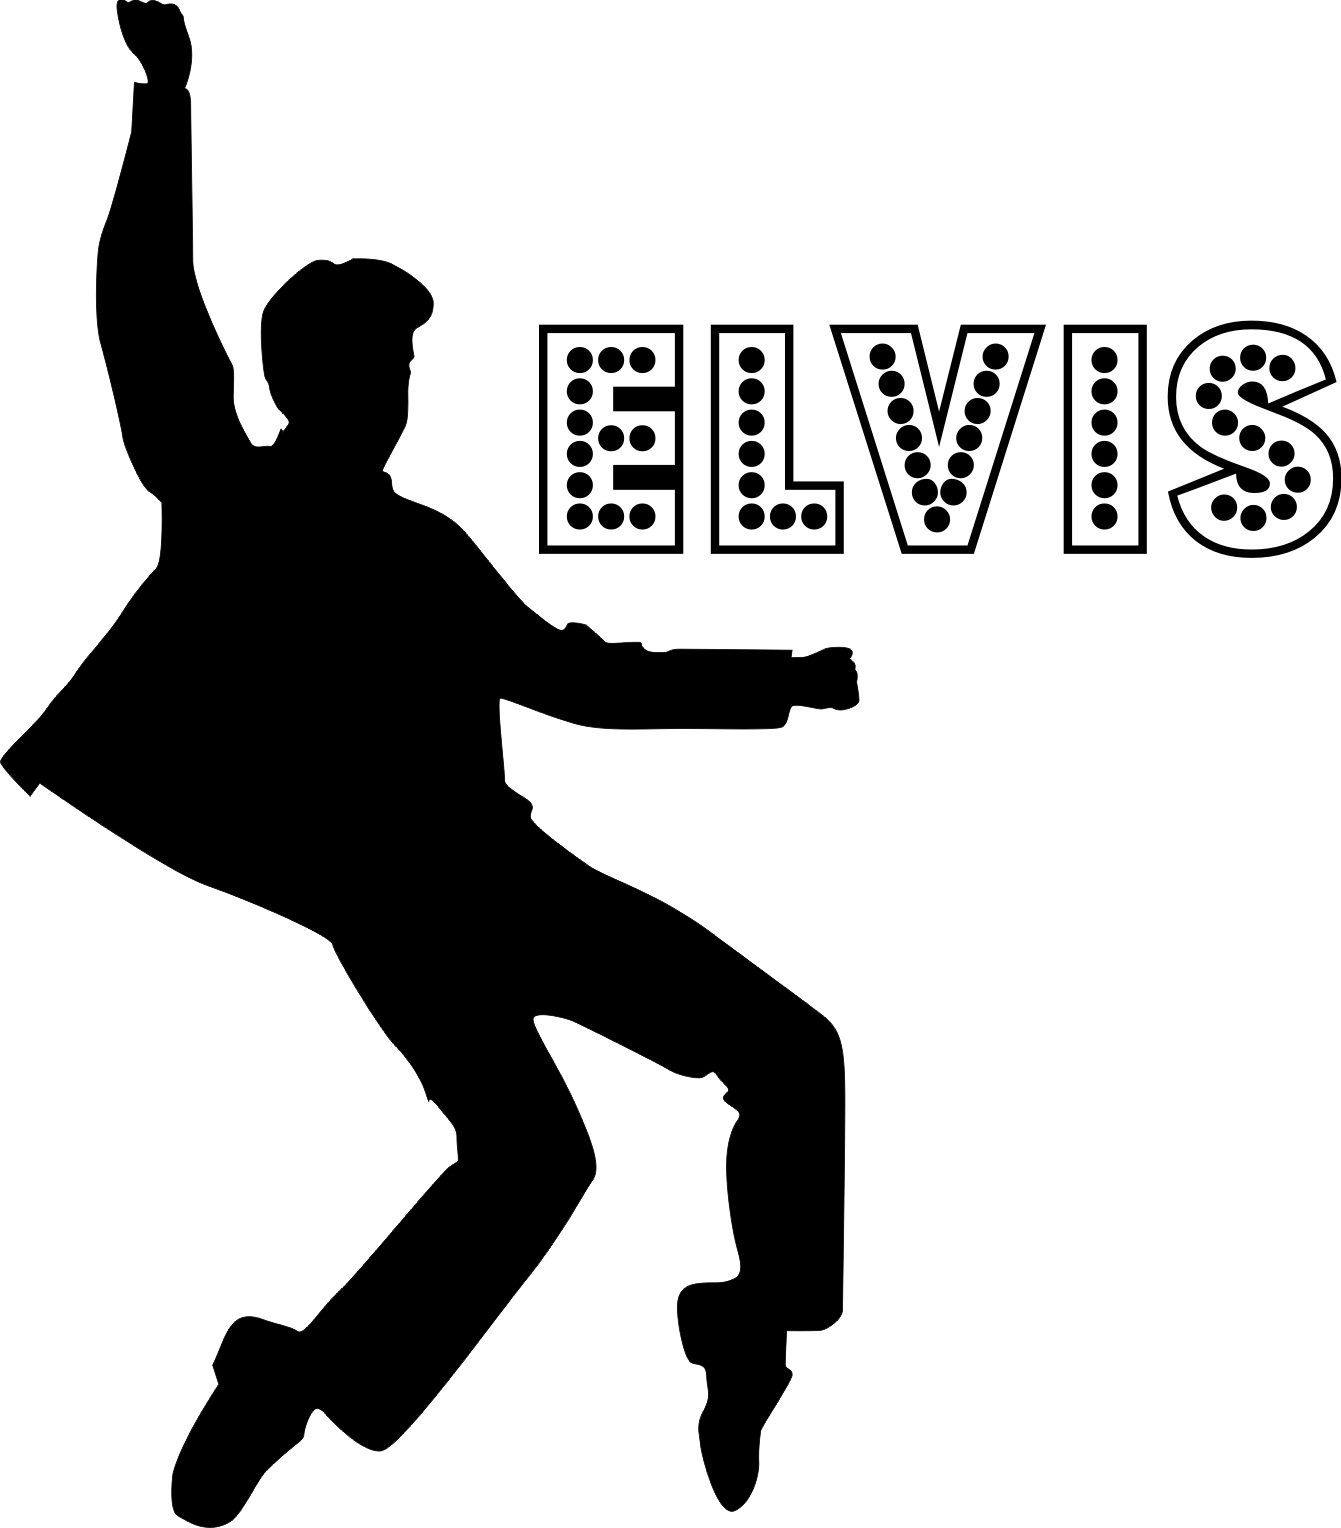 Elvis Presley Guitar Stencil on elvis presley logo clip art